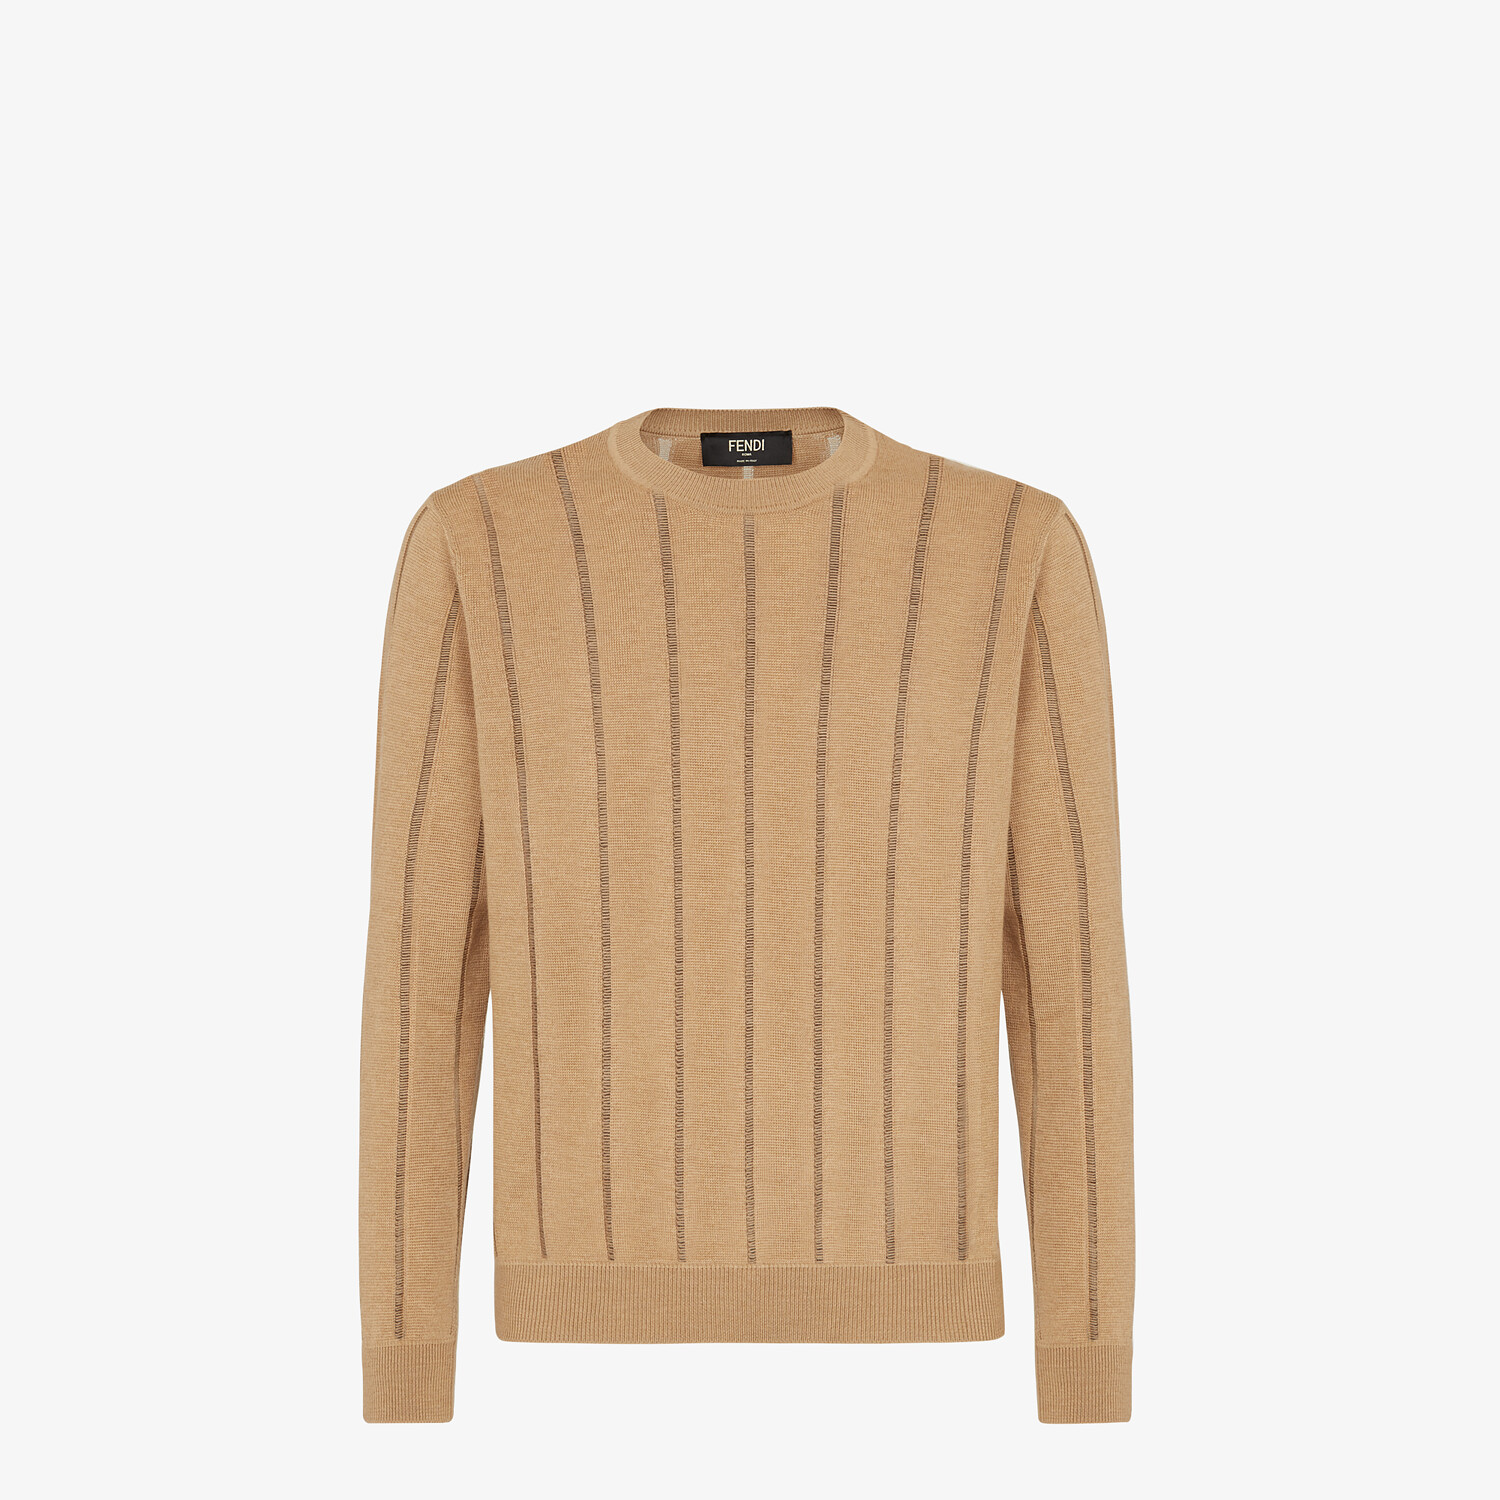 FENDI SWEATER - Brown wool sweater - view 1 detail